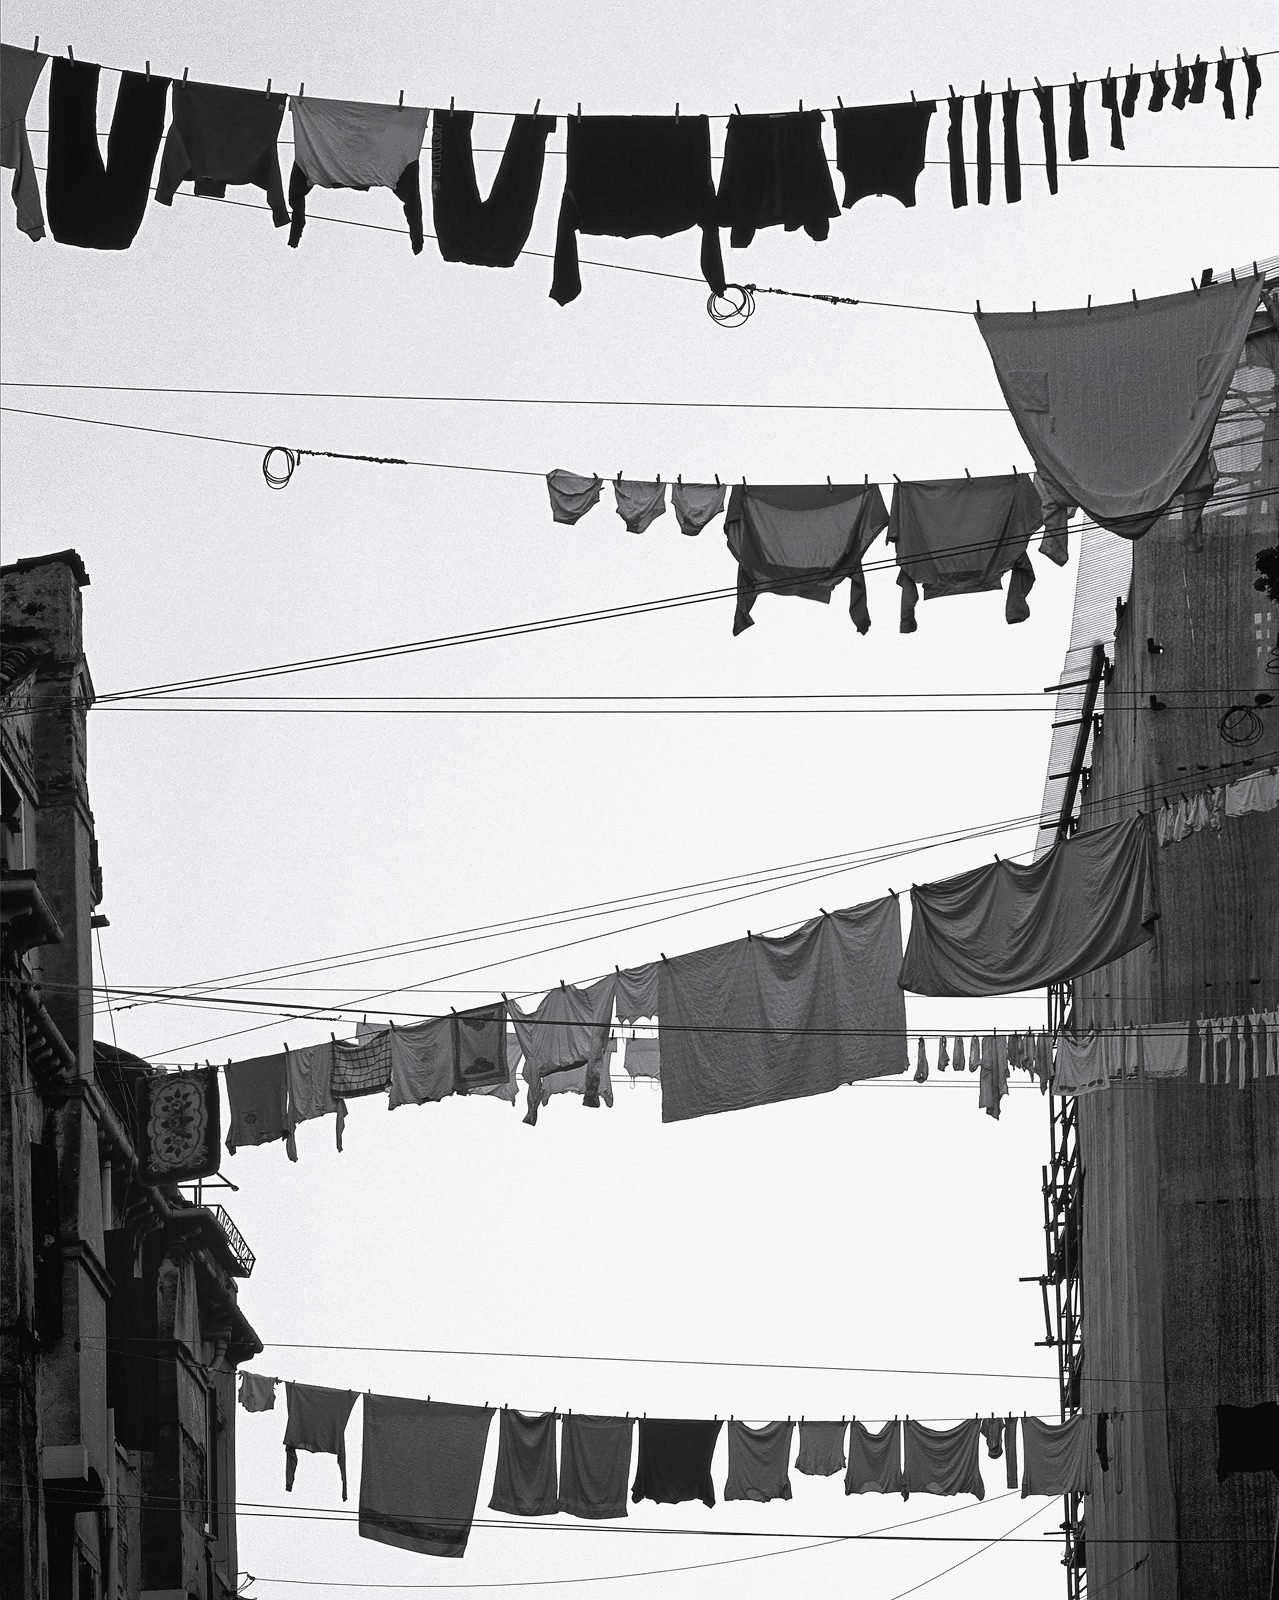 Mondays are washday in Burano and every household seems to string out their immaculately manicured and scrubbed washing across...